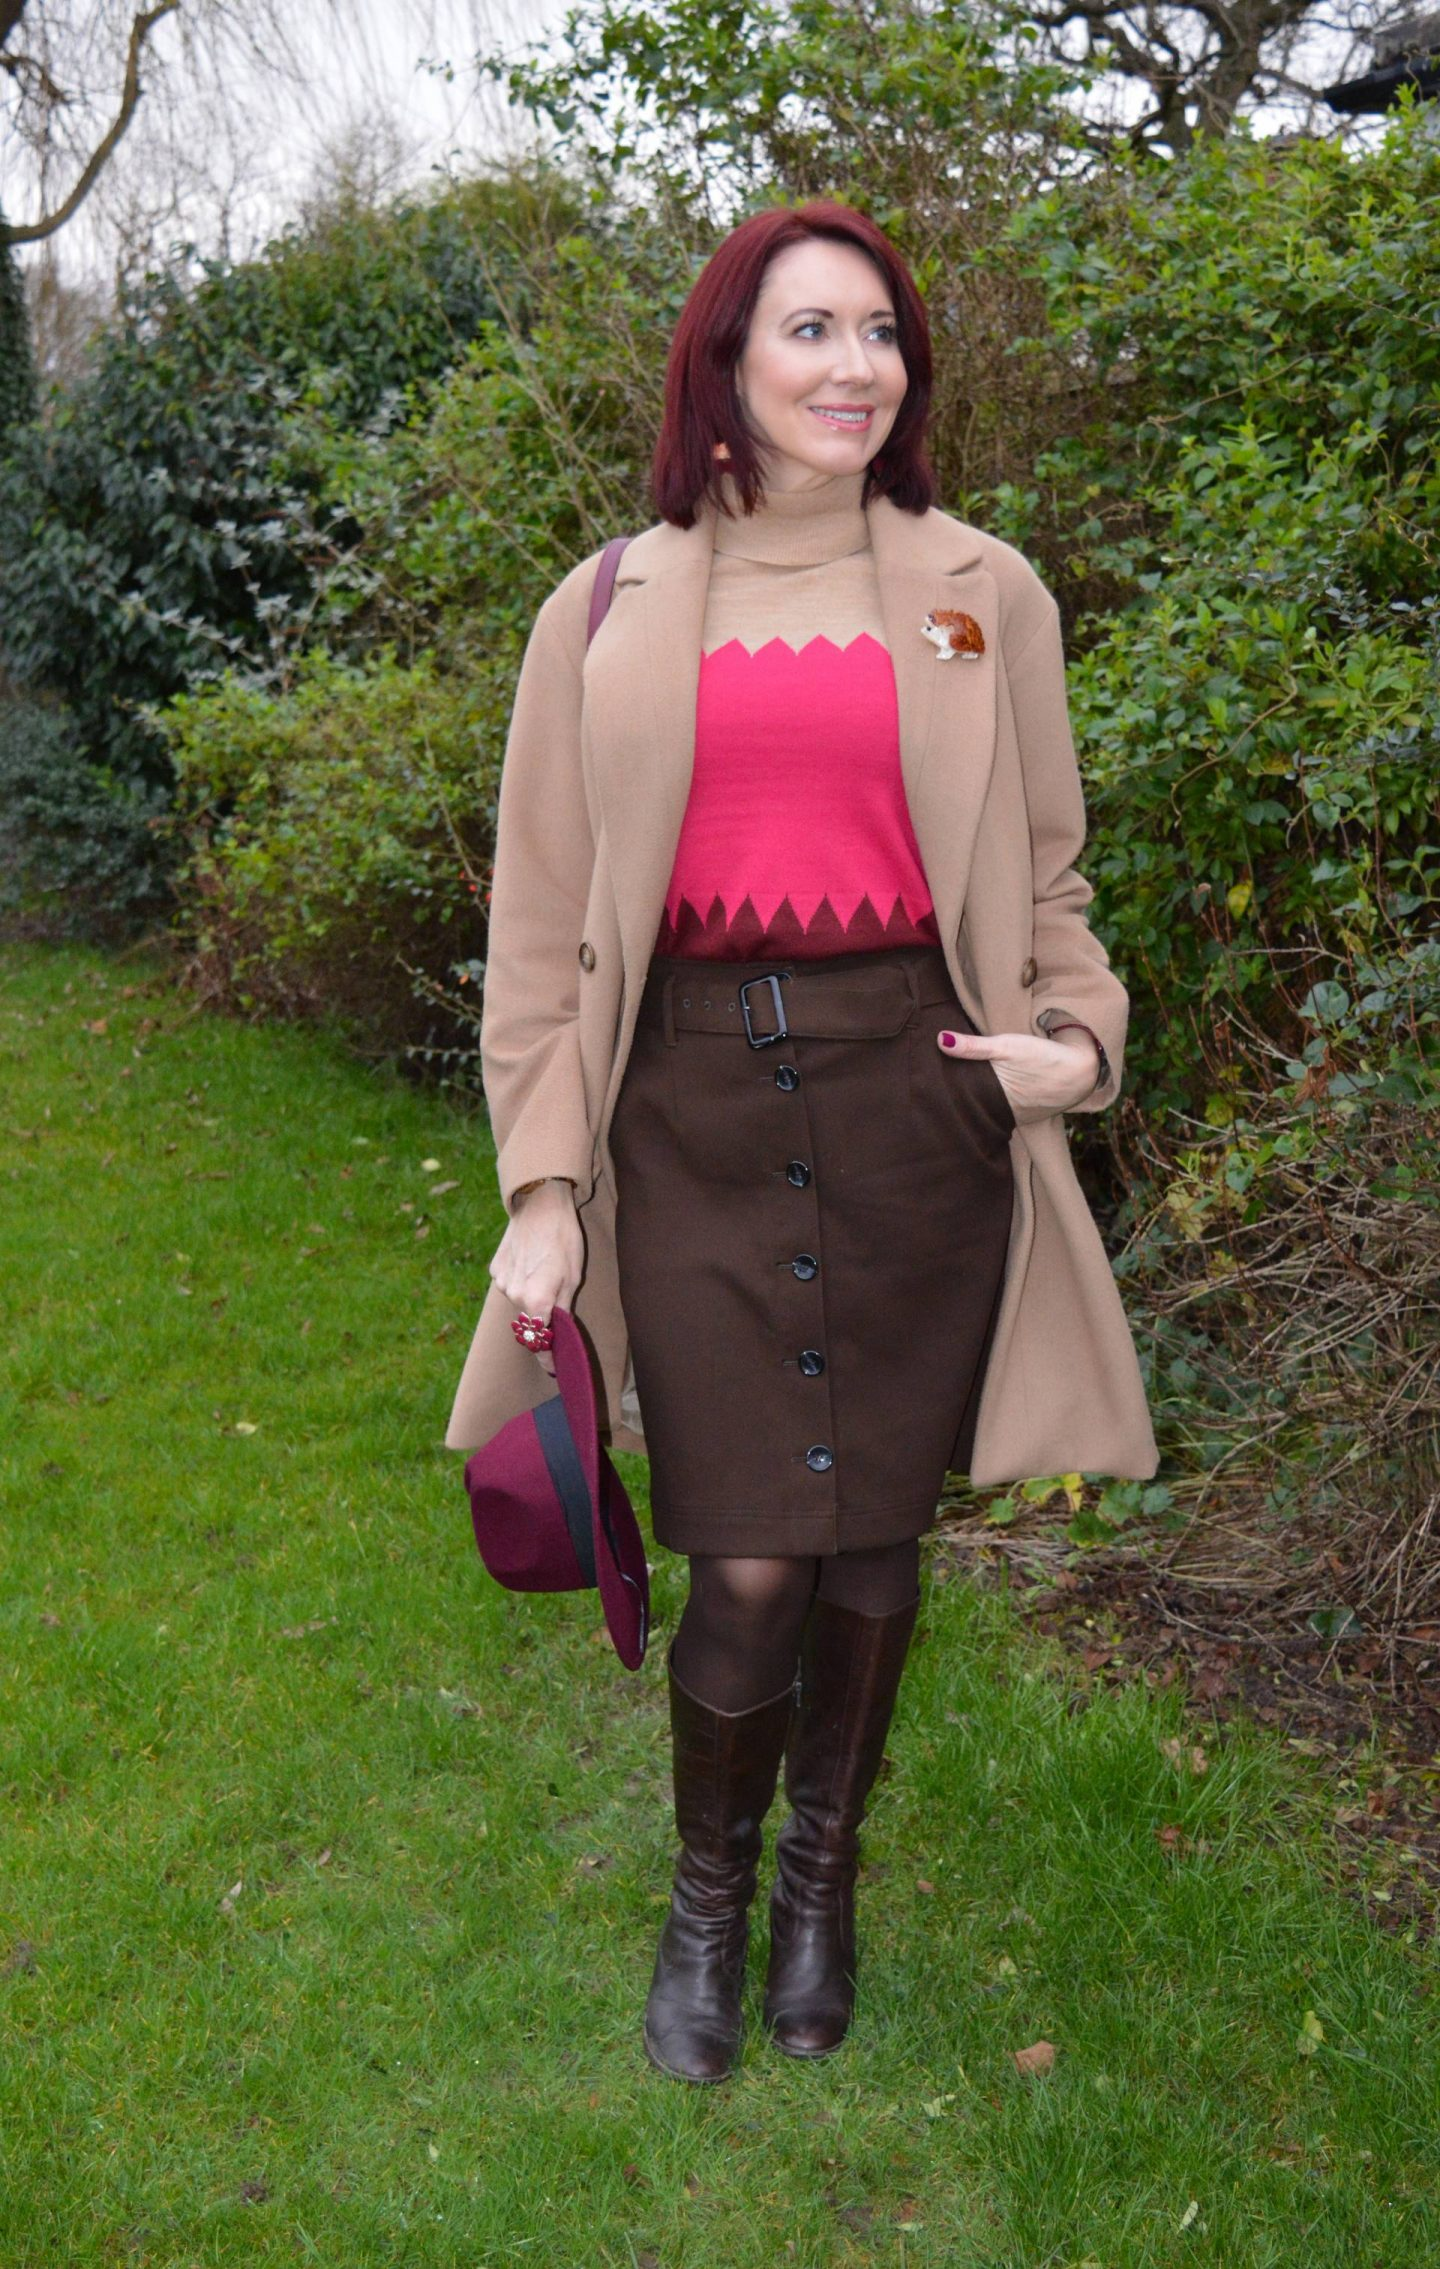 Neutrals and Berry Tones: Great Plains camel coat, Marks & Spencer brwon button up skirt